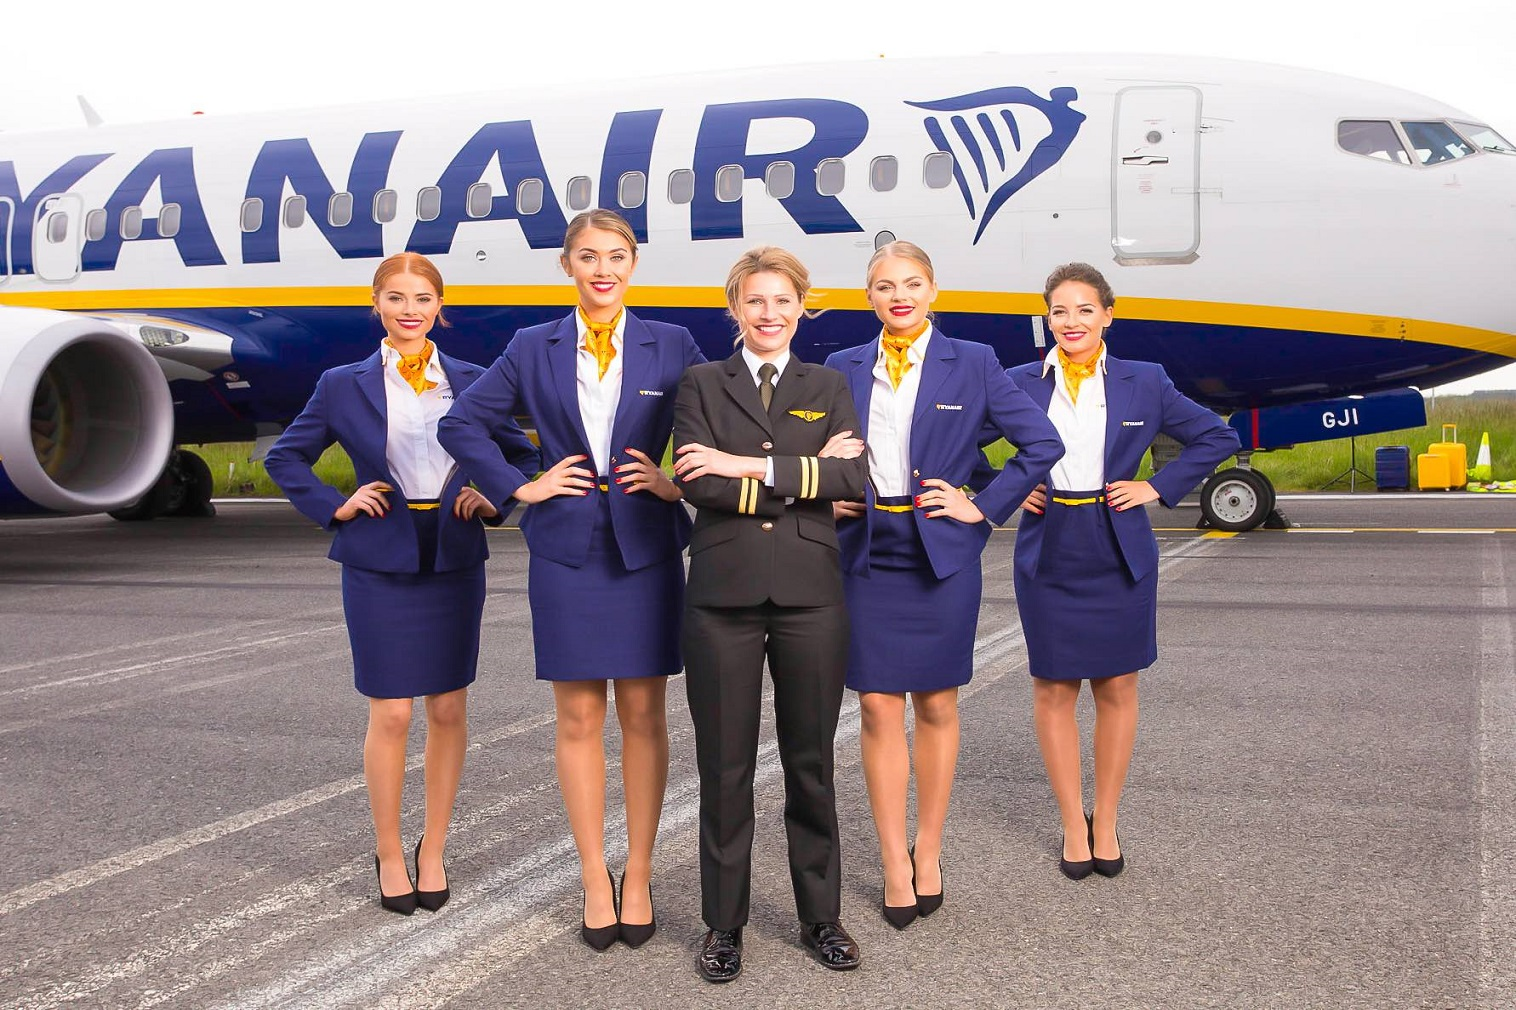 Ryanair plans to operate over 1,000 daily flights from 1 July.